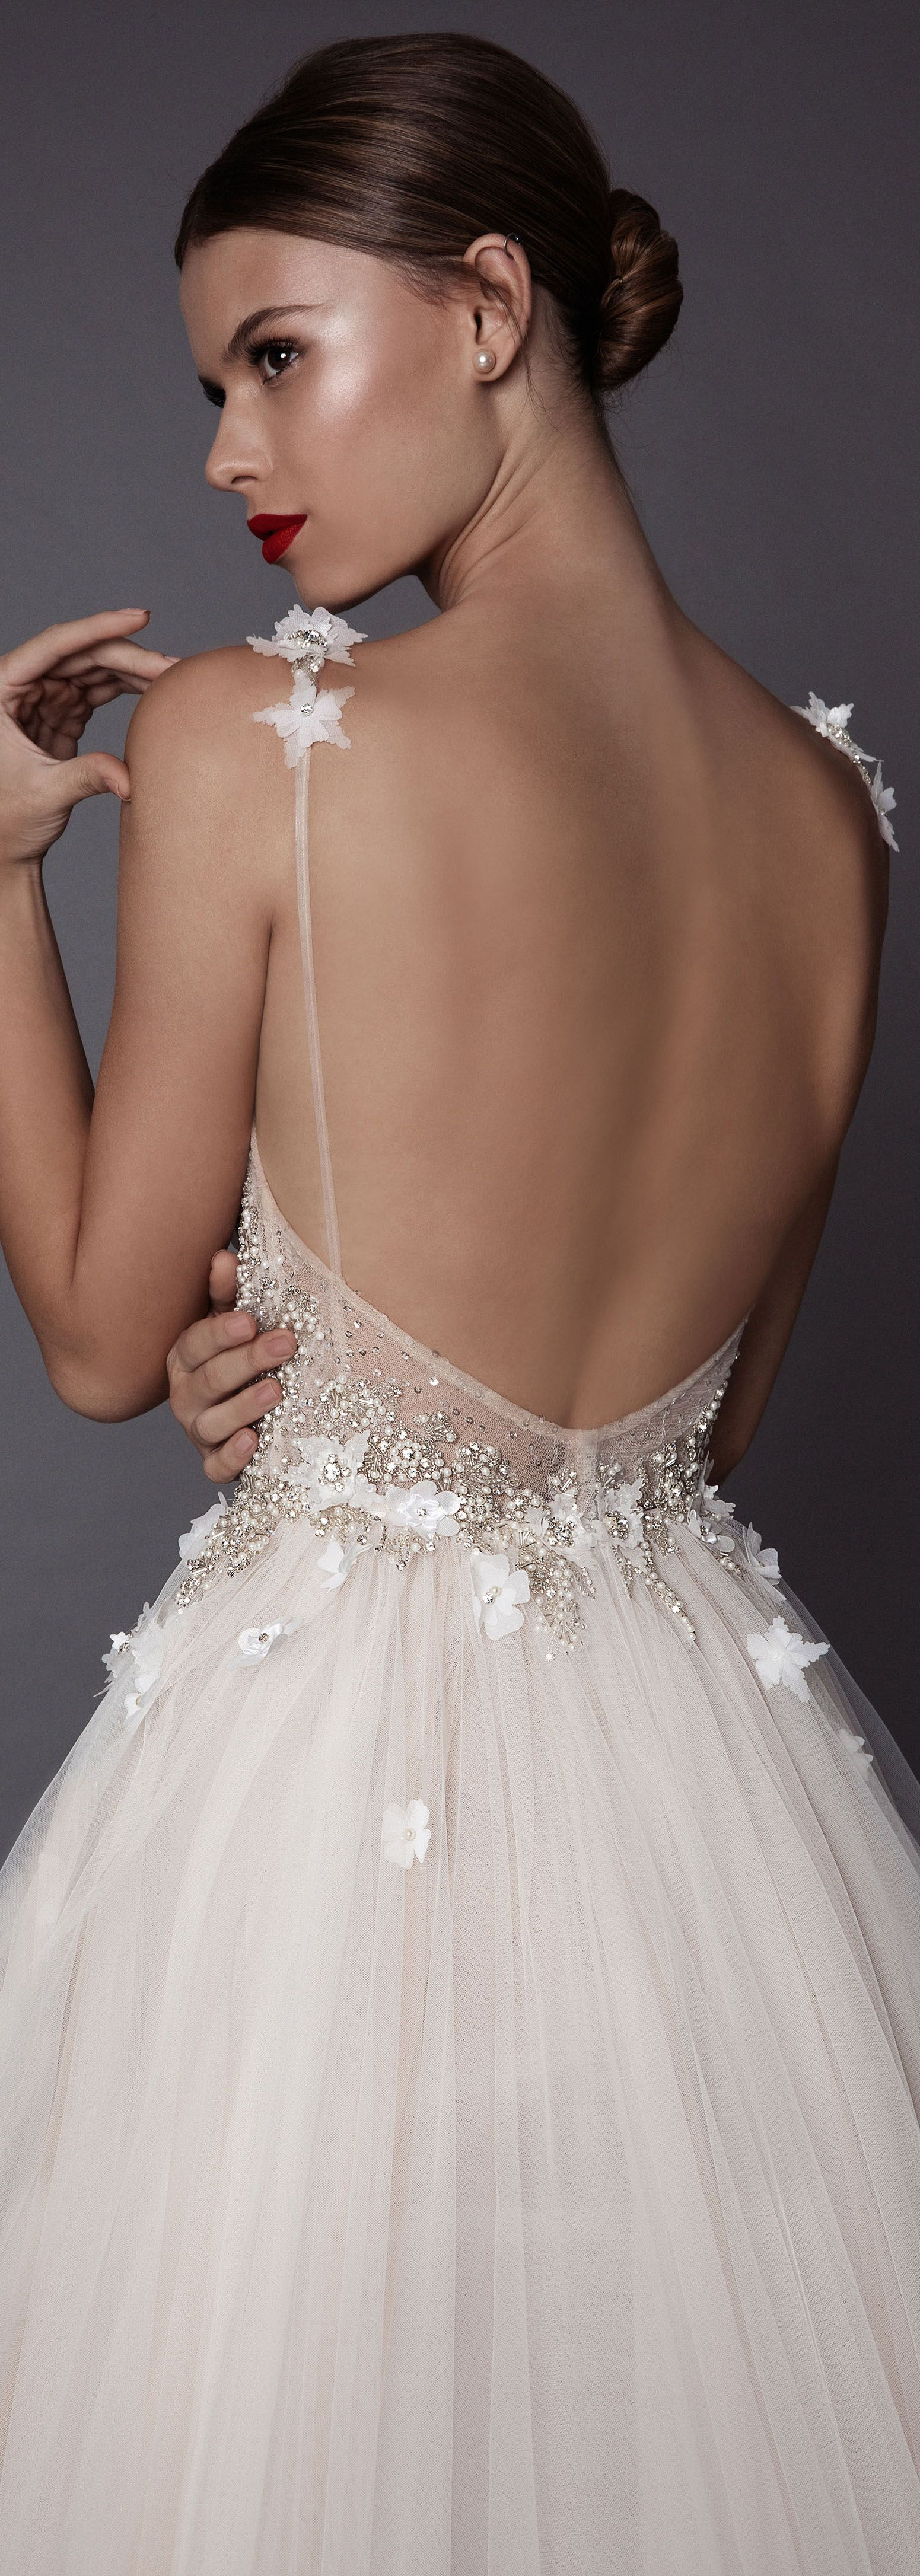 """""""Adel"""" from the new bridal line - MUSE by berta <3"""